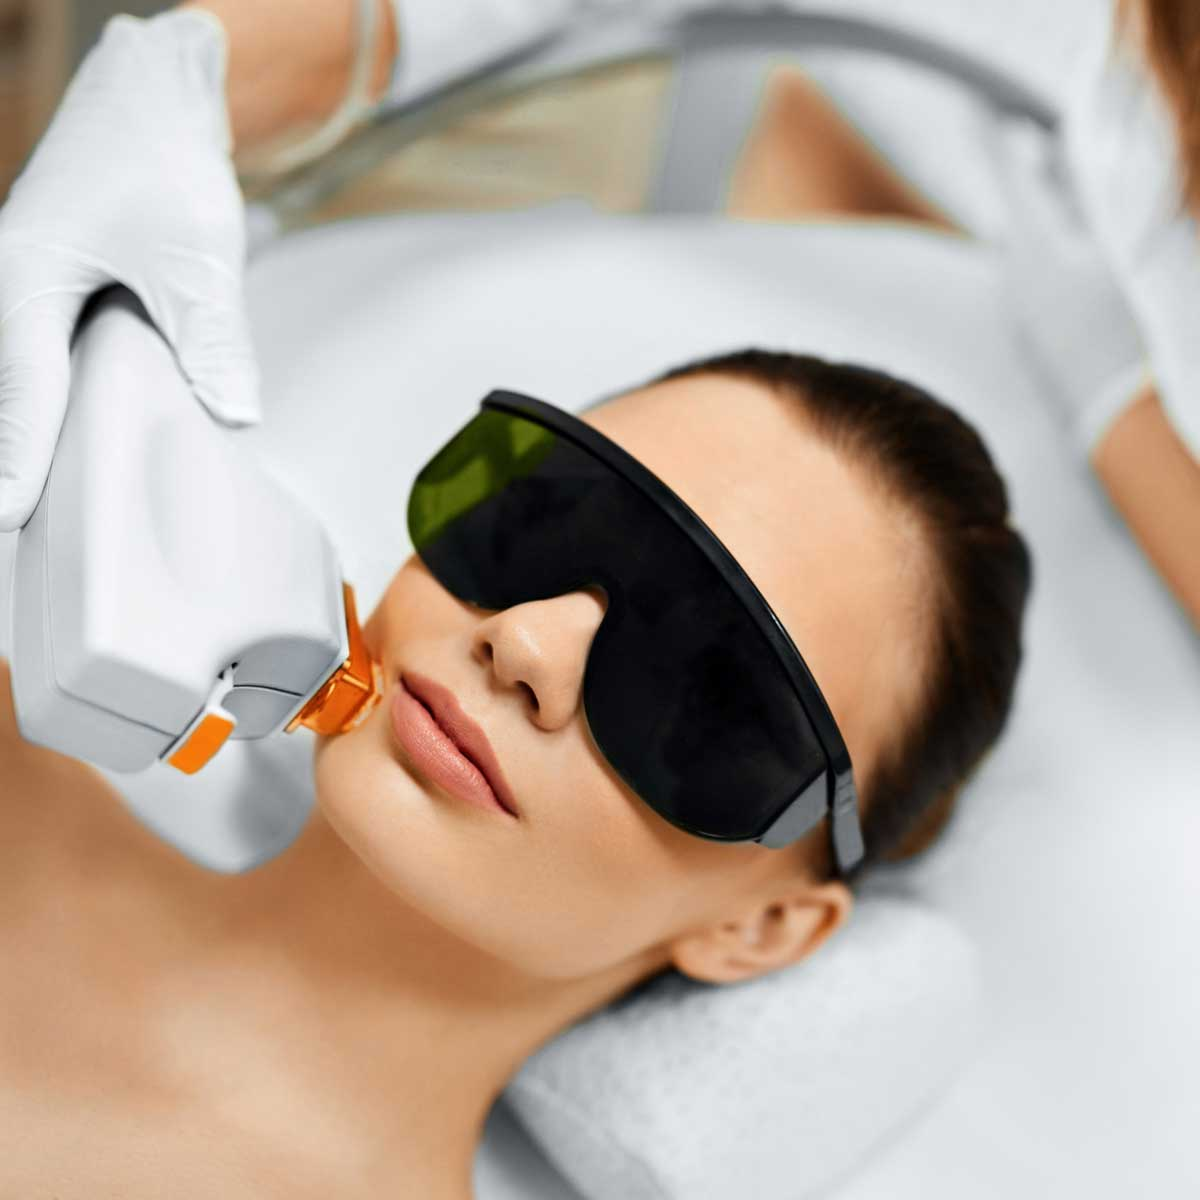 laser clinic essex southend on sea body aesthetics laser treatments